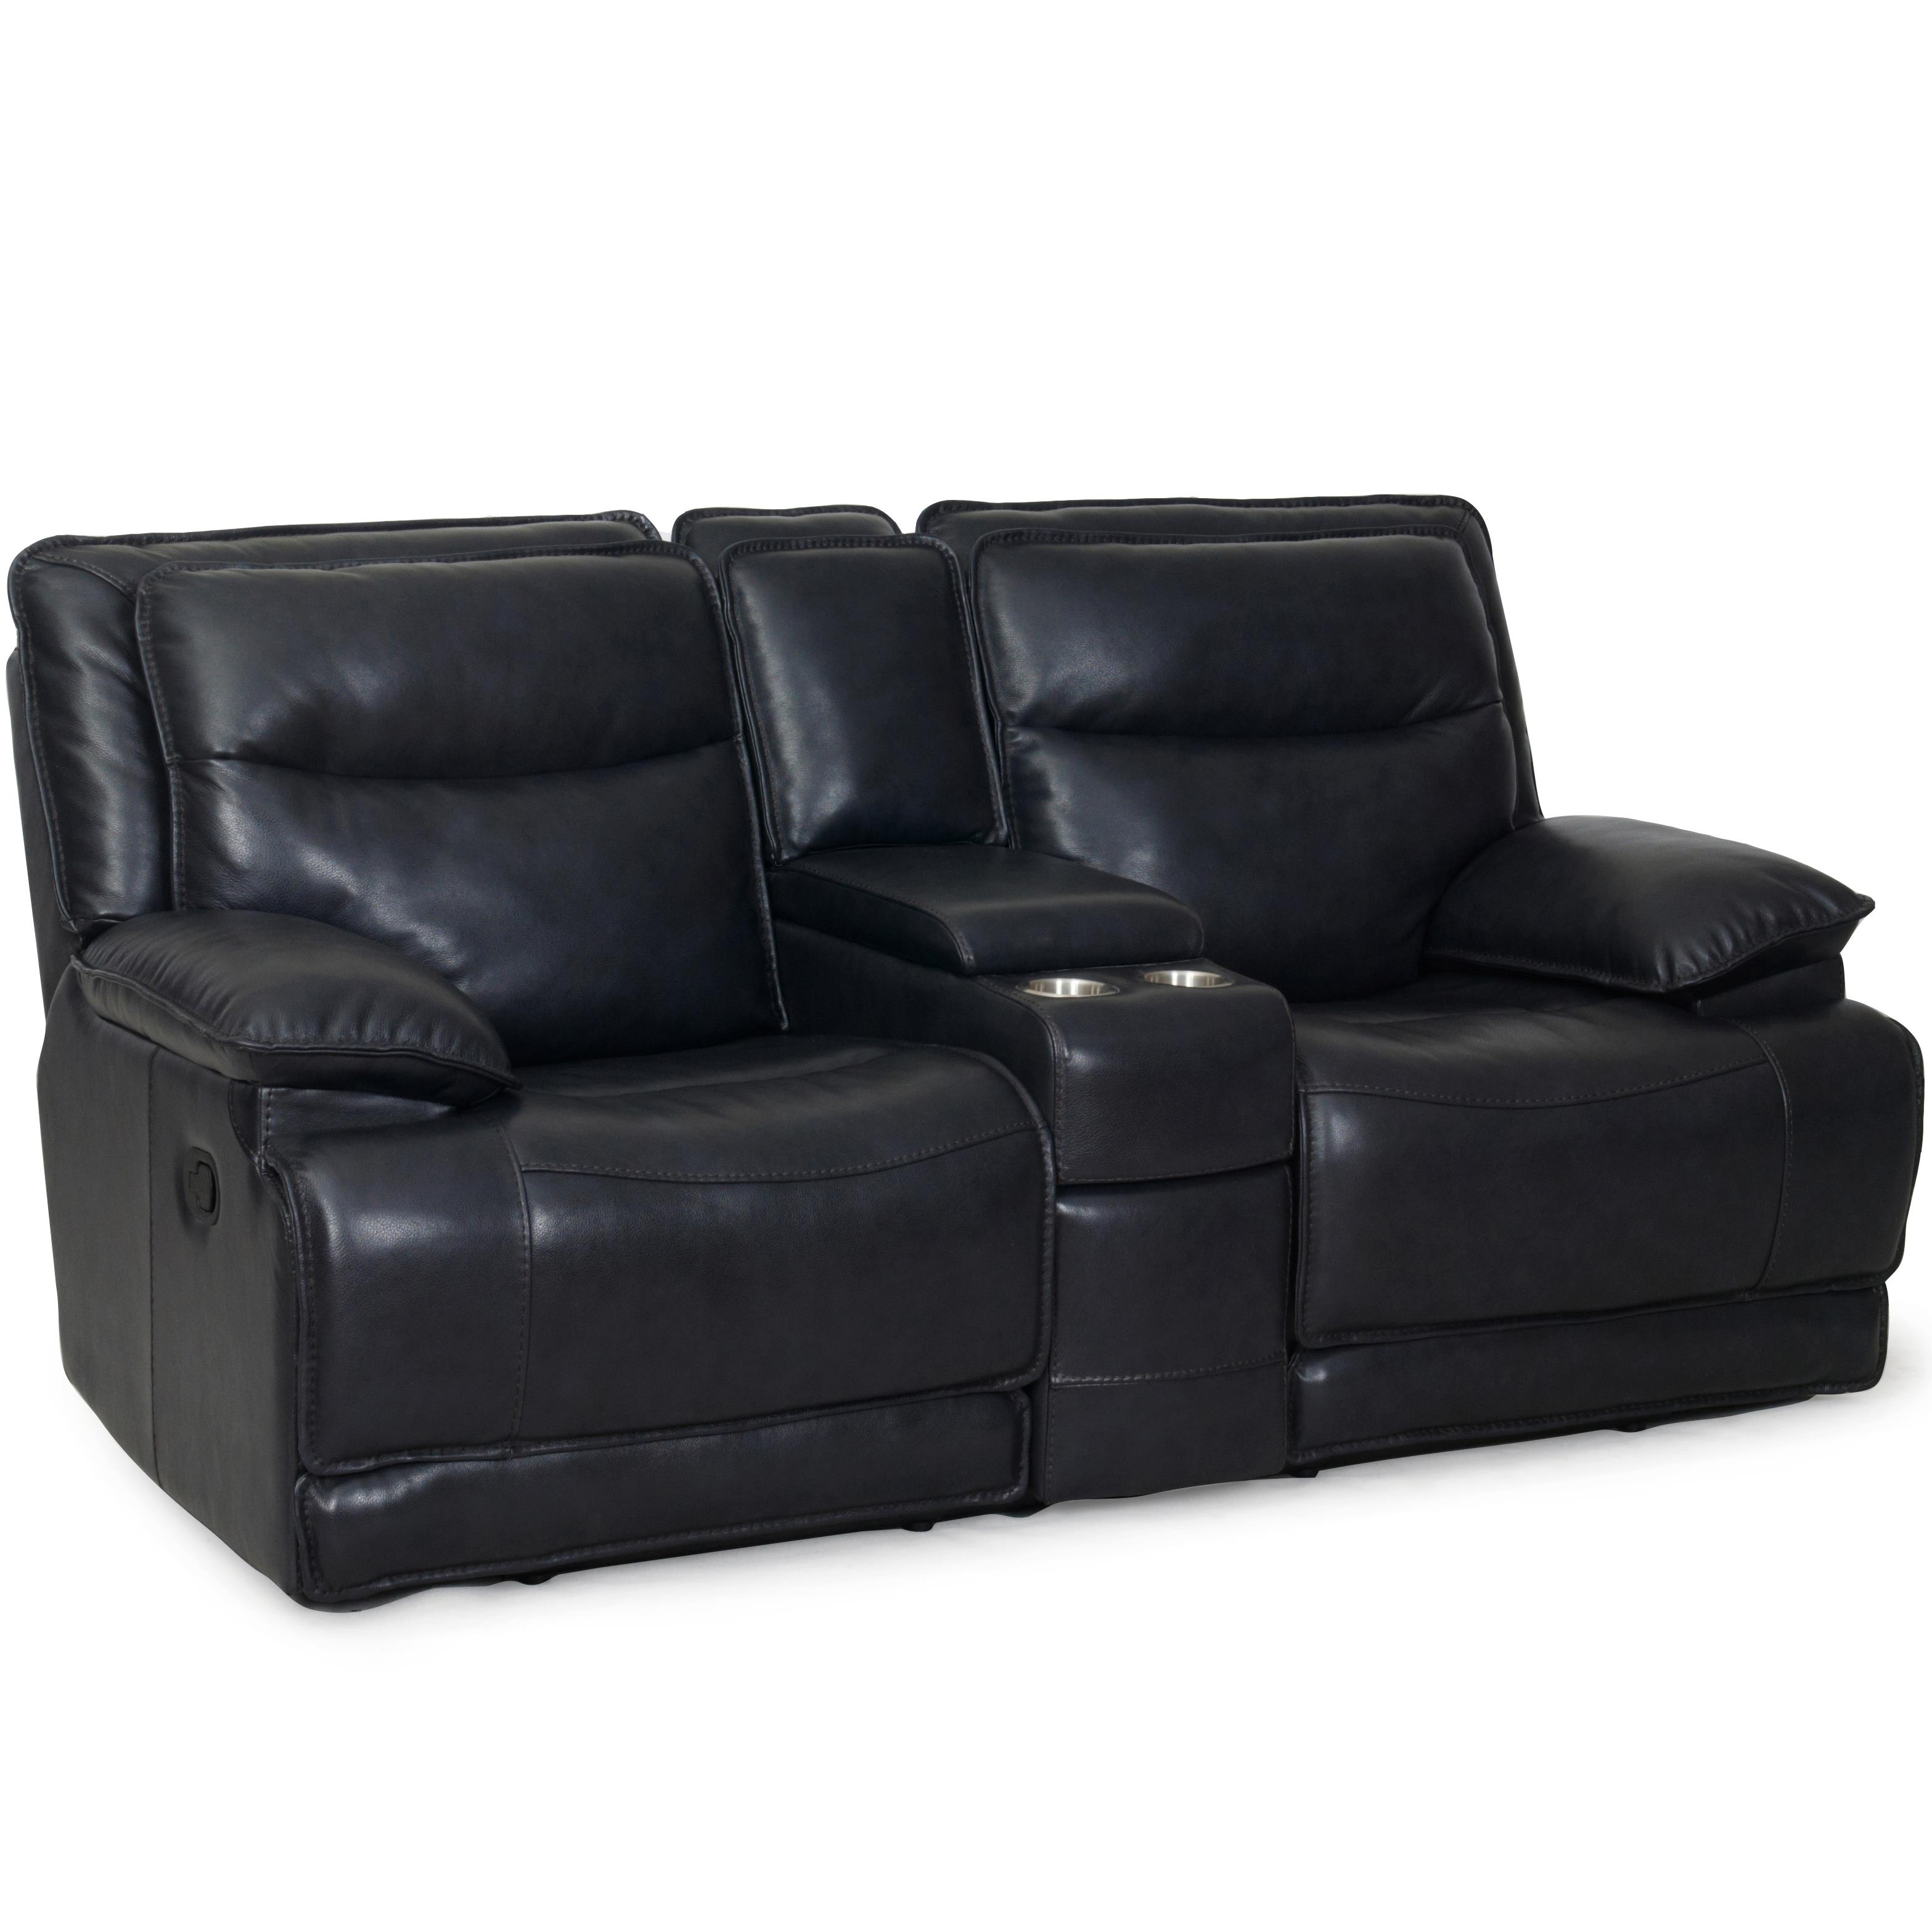 Sarah Randolph Designs-CC 1242 Casual Power Reclining Love Seat - Item Number: 1242-73pwr-TaylorGraphite